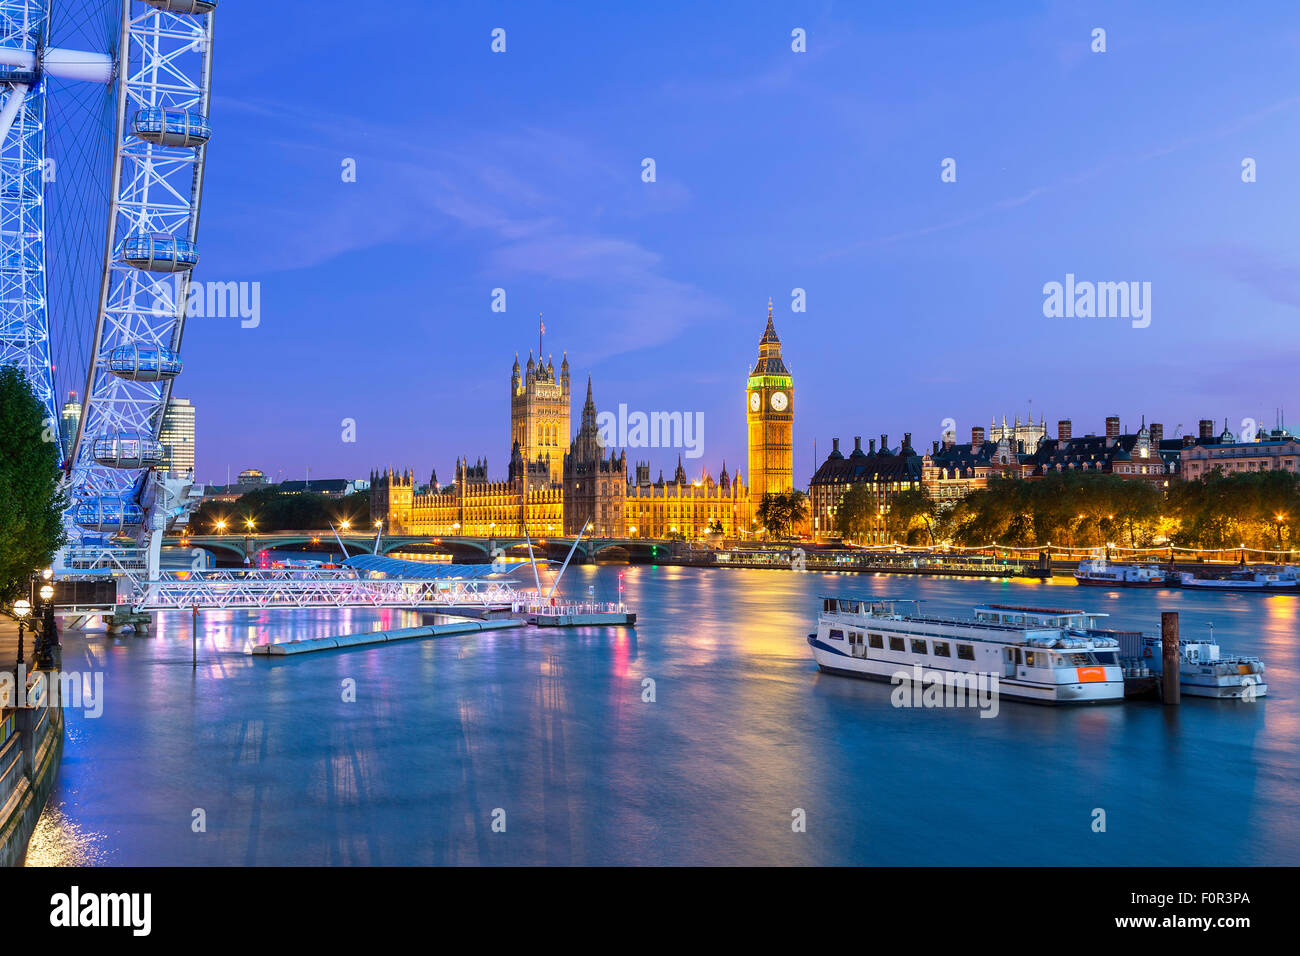 England, London Skyline at Dusk - Stock Image